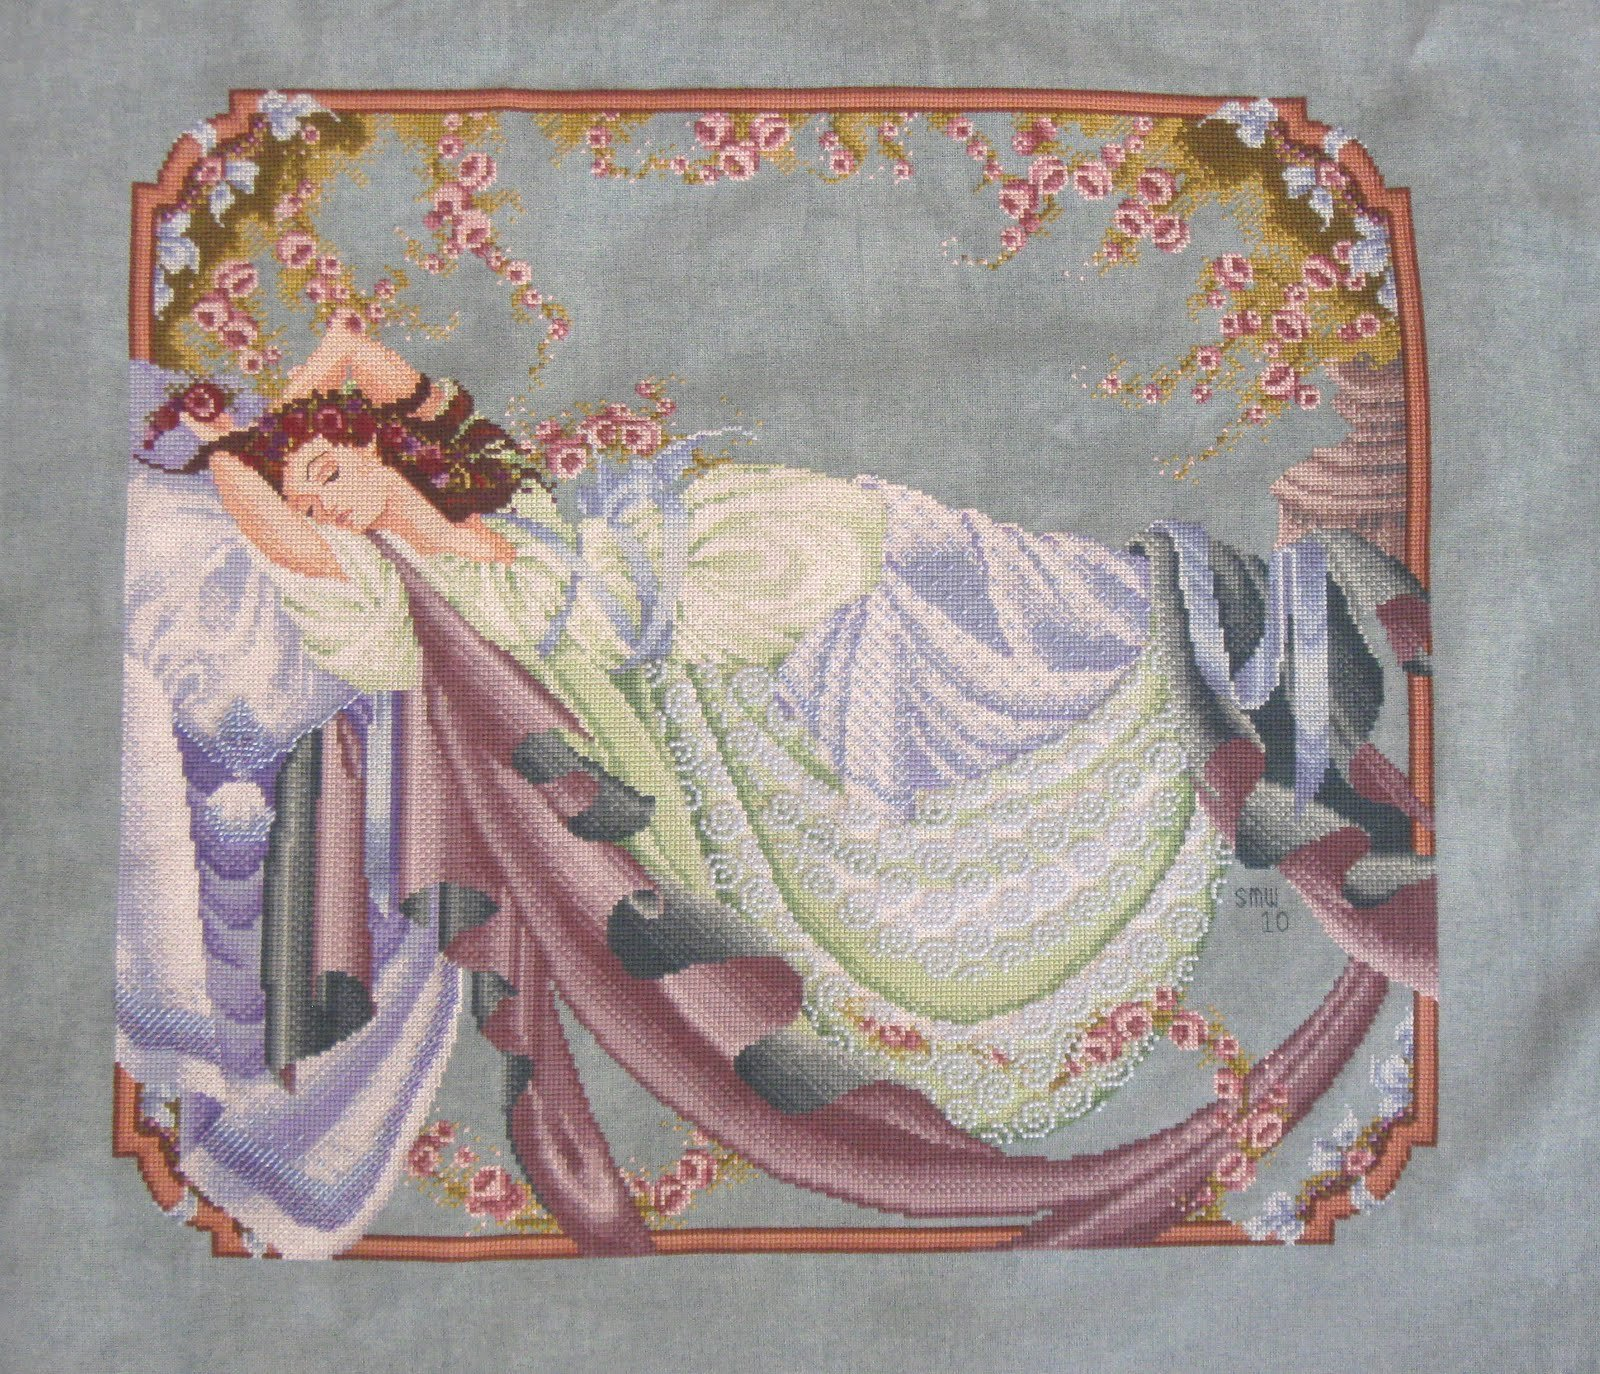 Sleeping Beauty Counted Cross-Stitch Chart